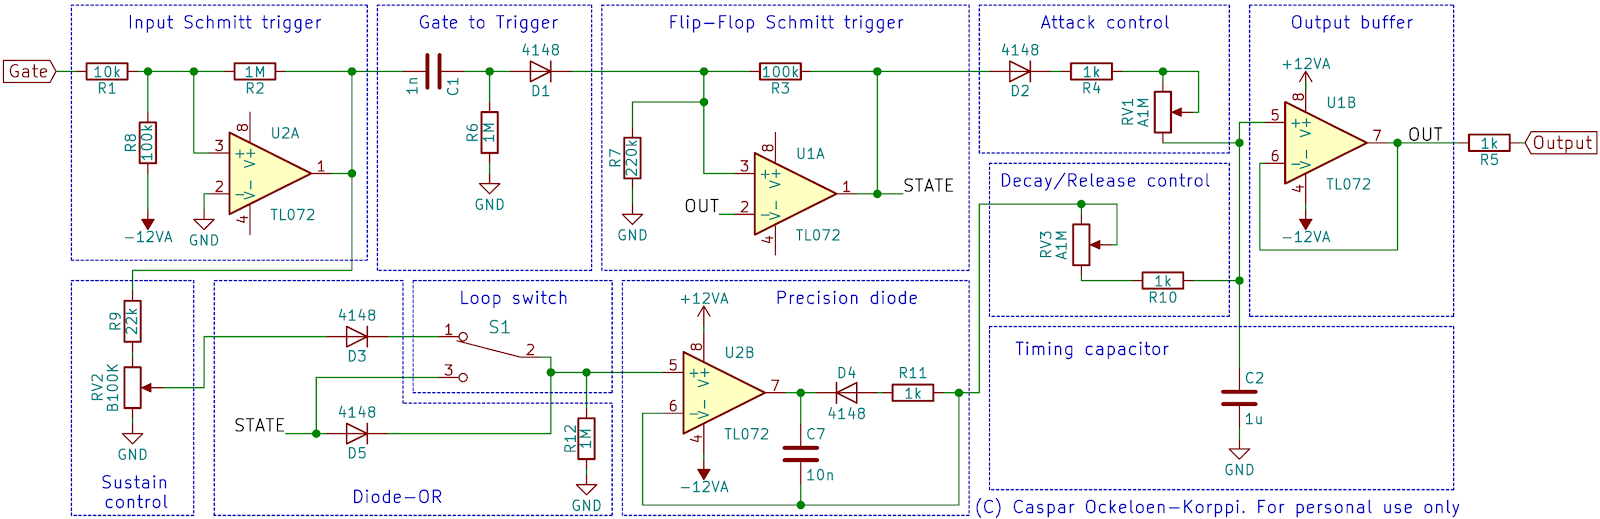 medium resolution of the gate input is conditioned by u2a using positive feedback r2 to create hysteresis and form a schmitt trigger this turns any input gate signal into a